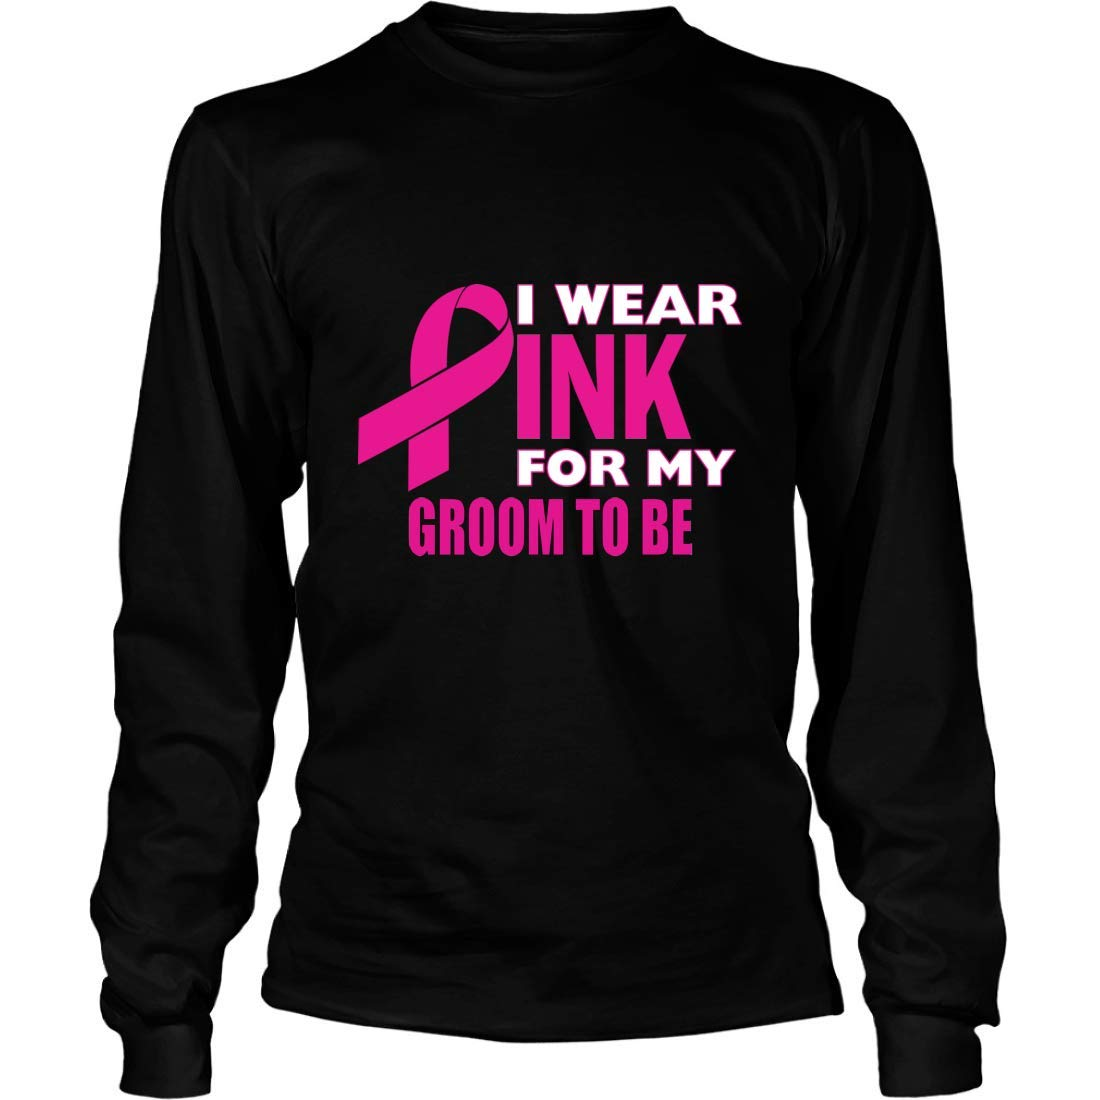 I Wear Pink for My Groom Long Sleeve T-Shirt Unisex Shirts Gifts for Breast Cancer Awareness